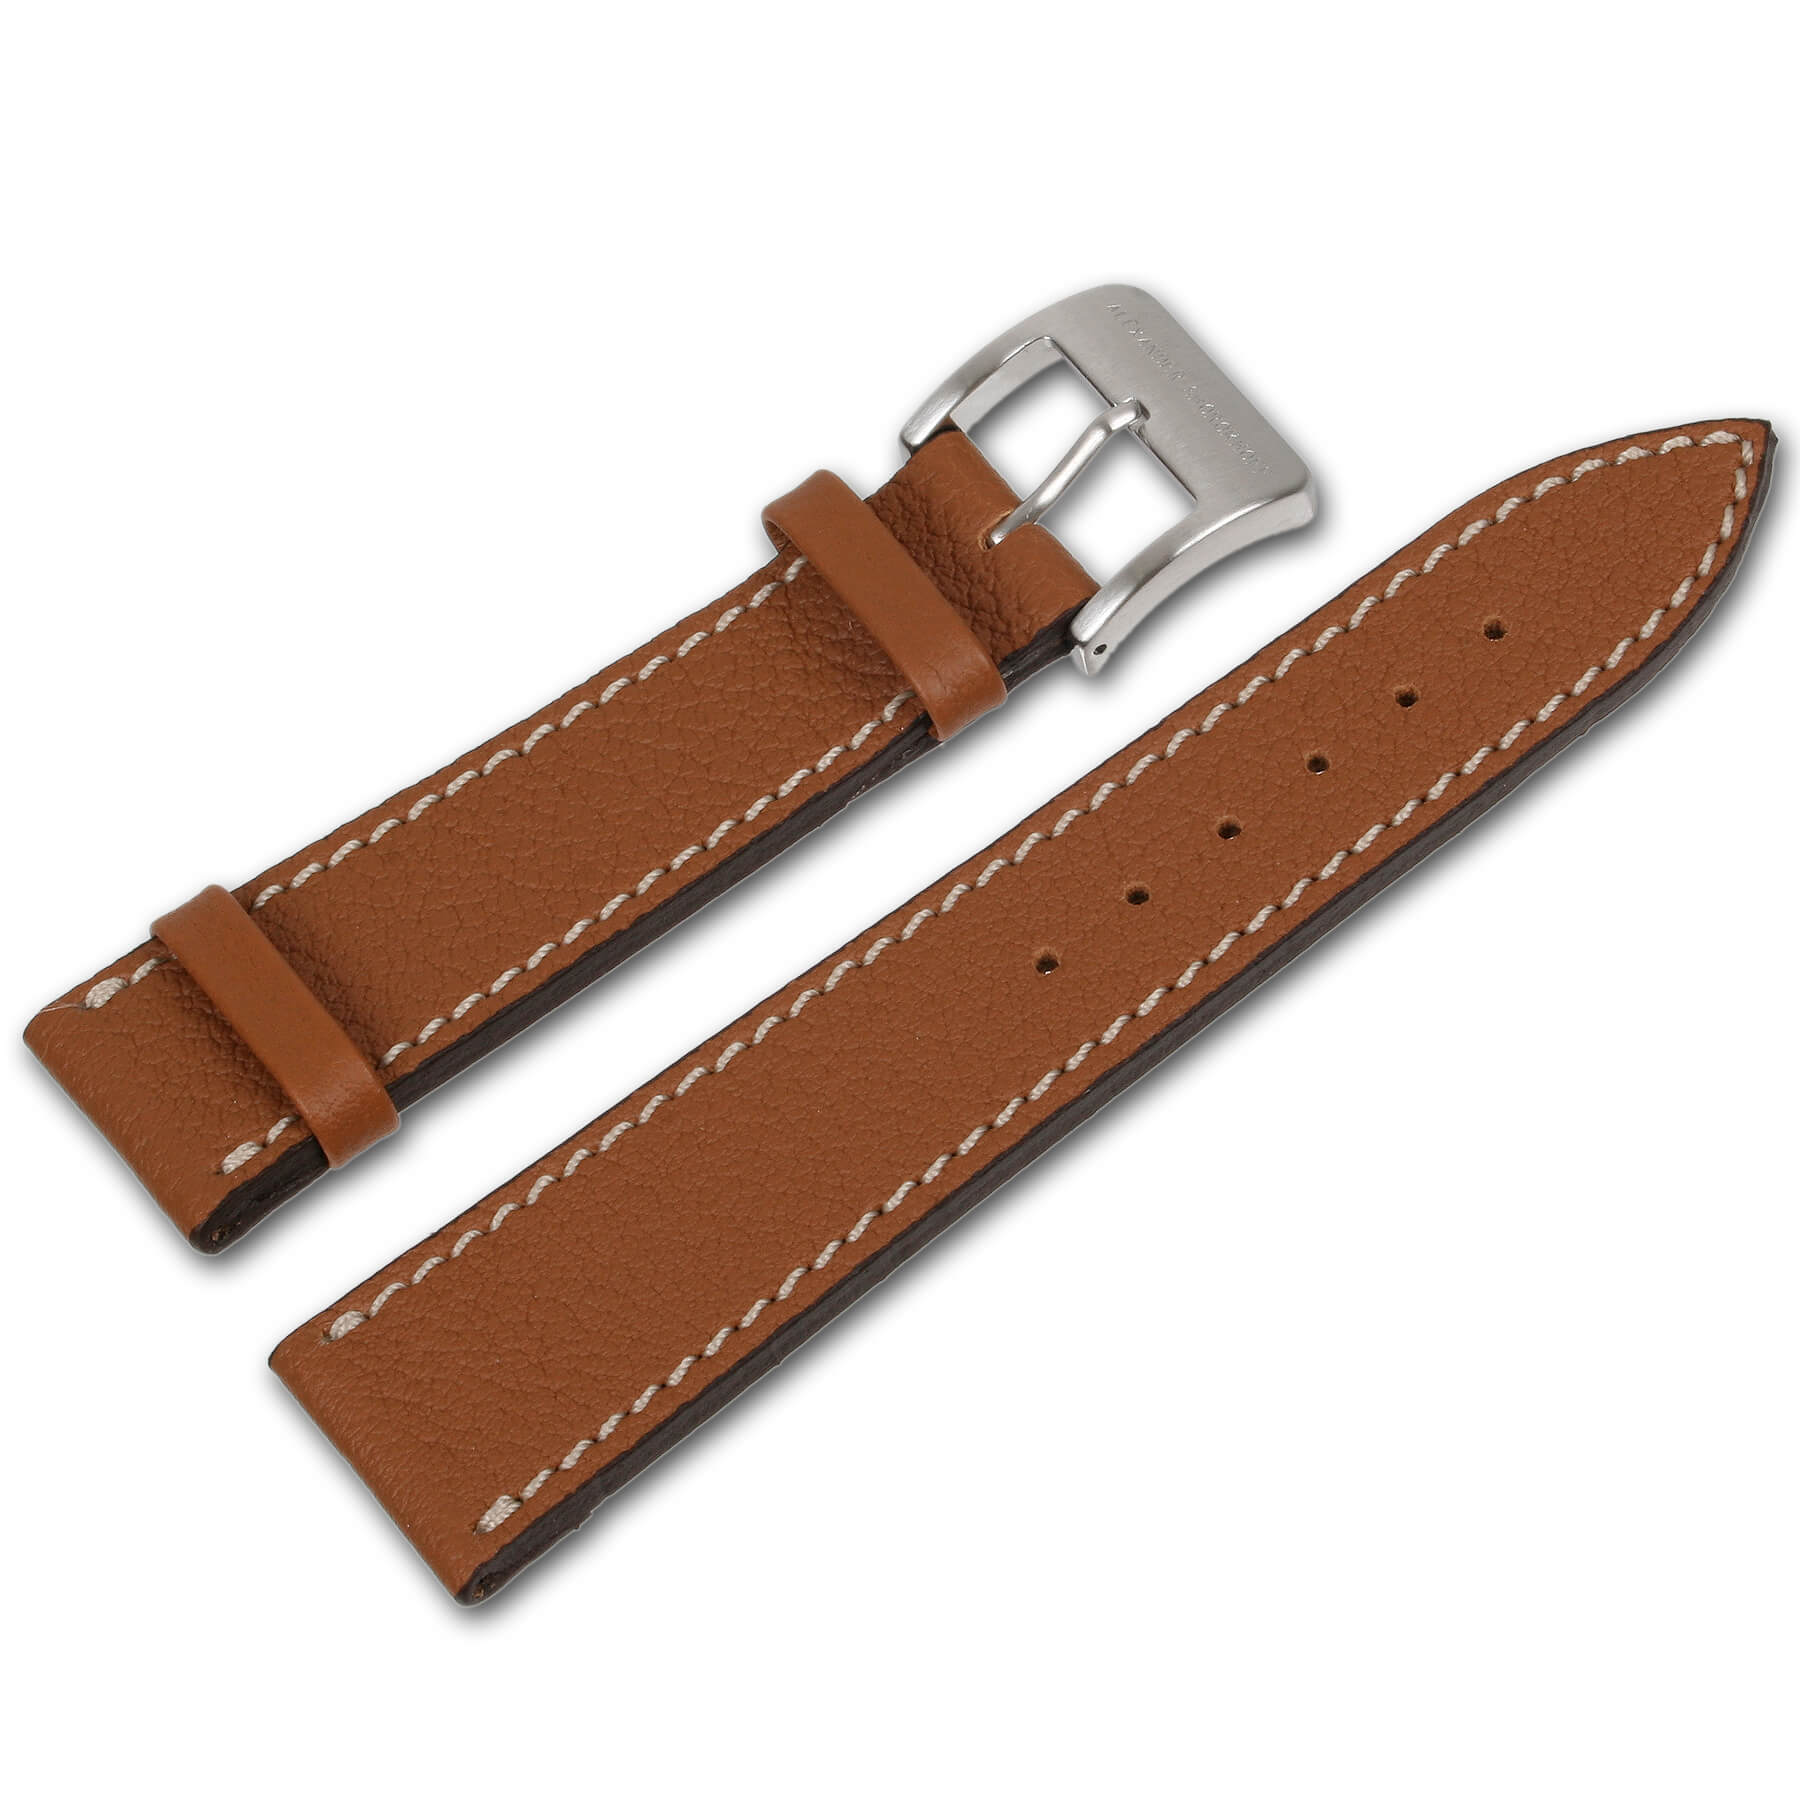 Alexander Shorokhoff - Leather strap from shrunken calf leather - Brown